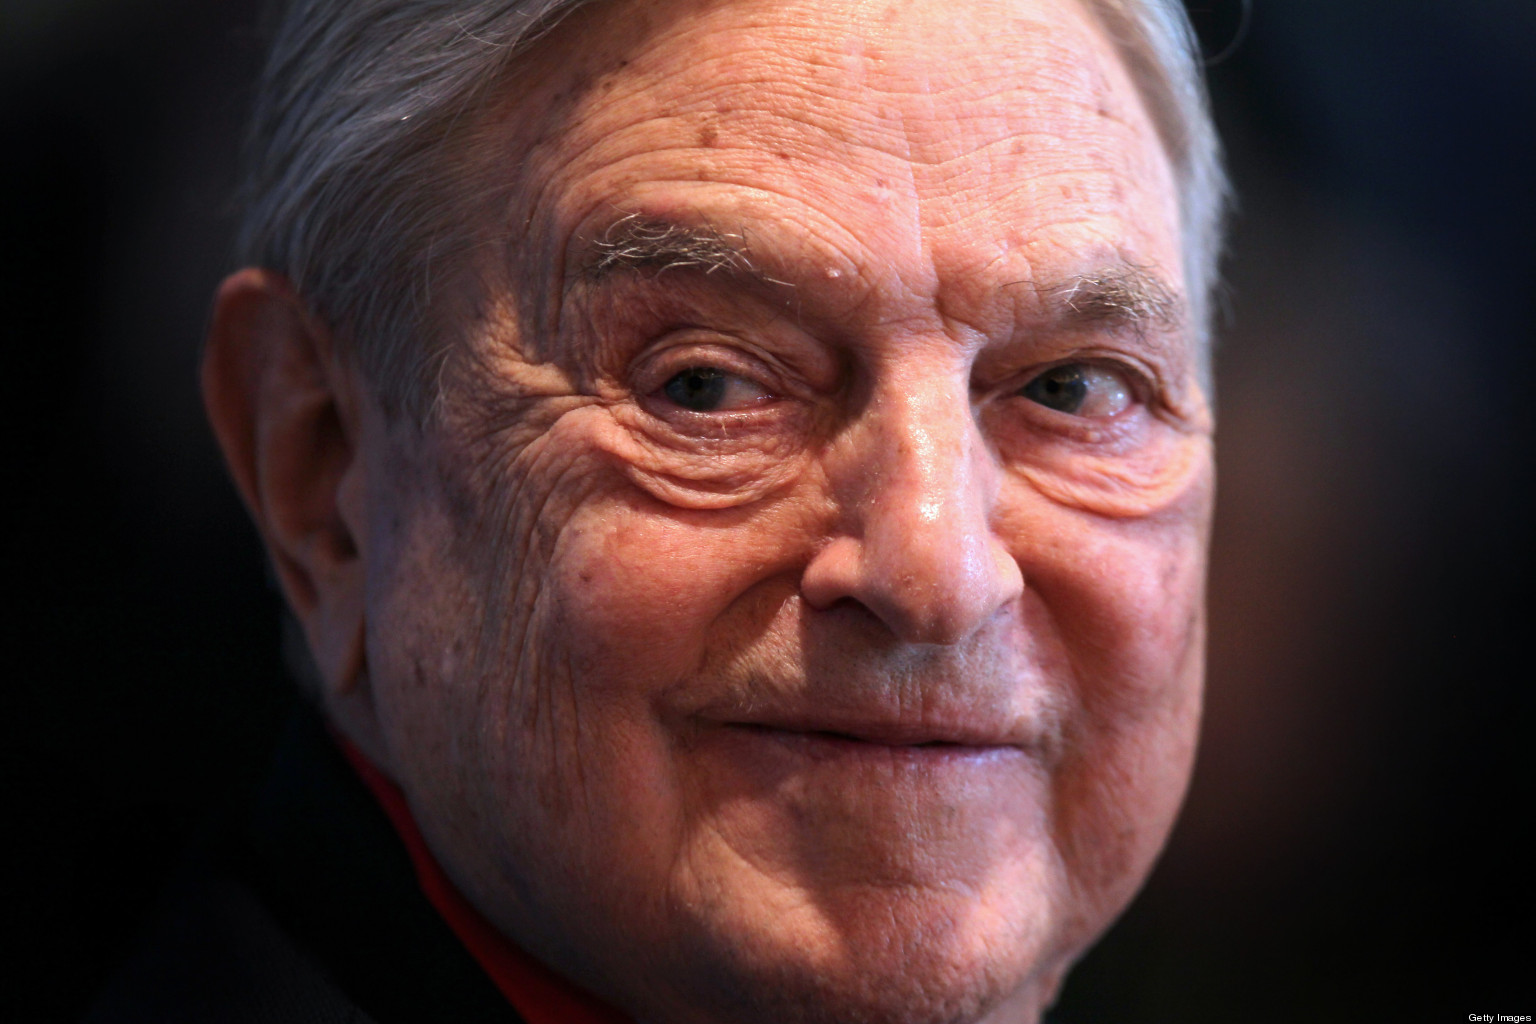 LOOK: Reuters Prematurely Publishes George Soros' Obit